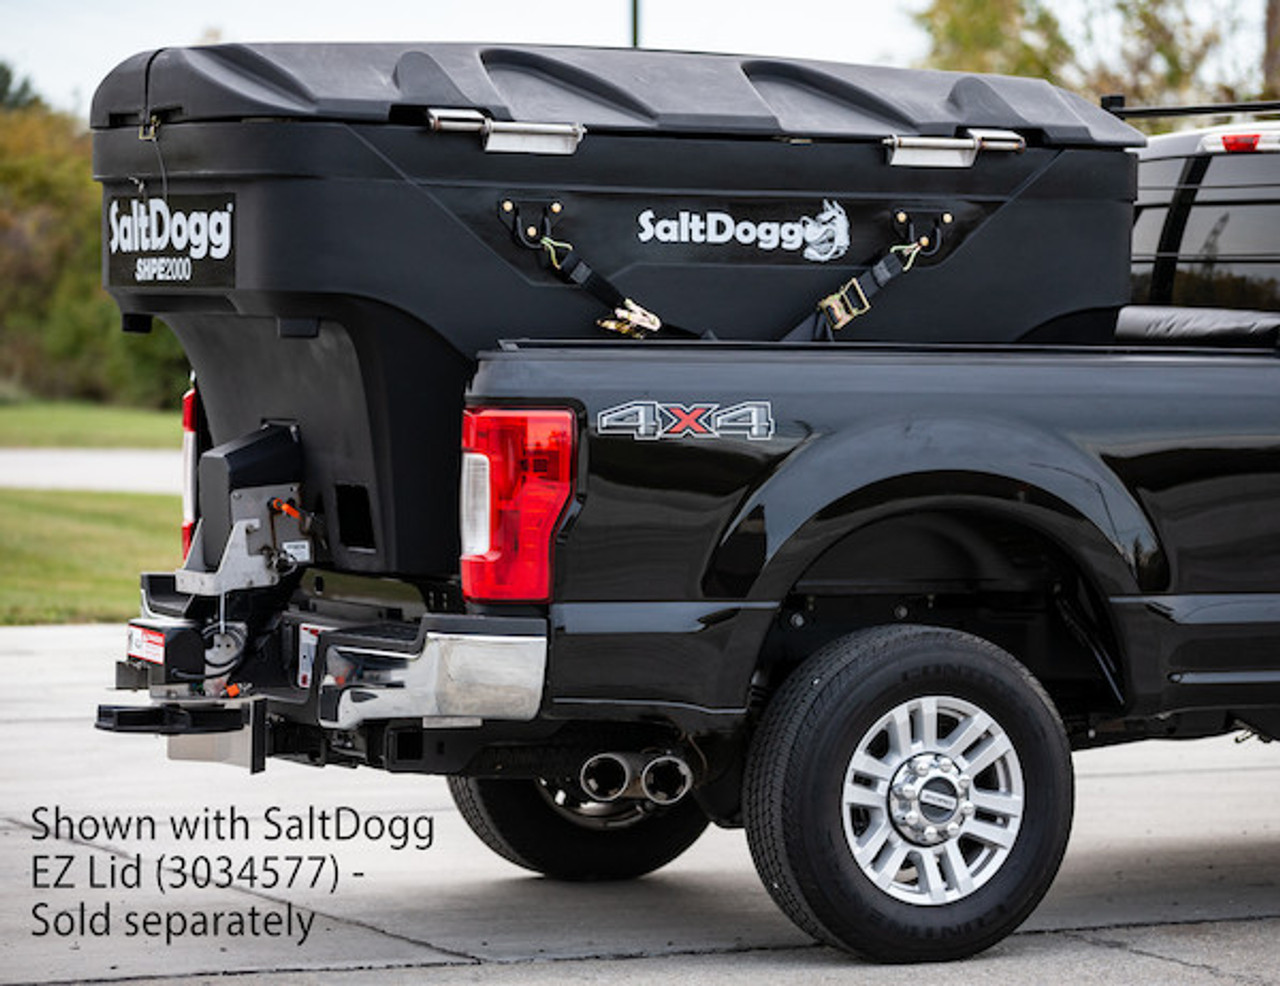 SHPE2000 BUYERS SALTDOGG ELECTRIC POLY HOPPER SPREADER WITH LID  (LID SOLD SEPARATELY)